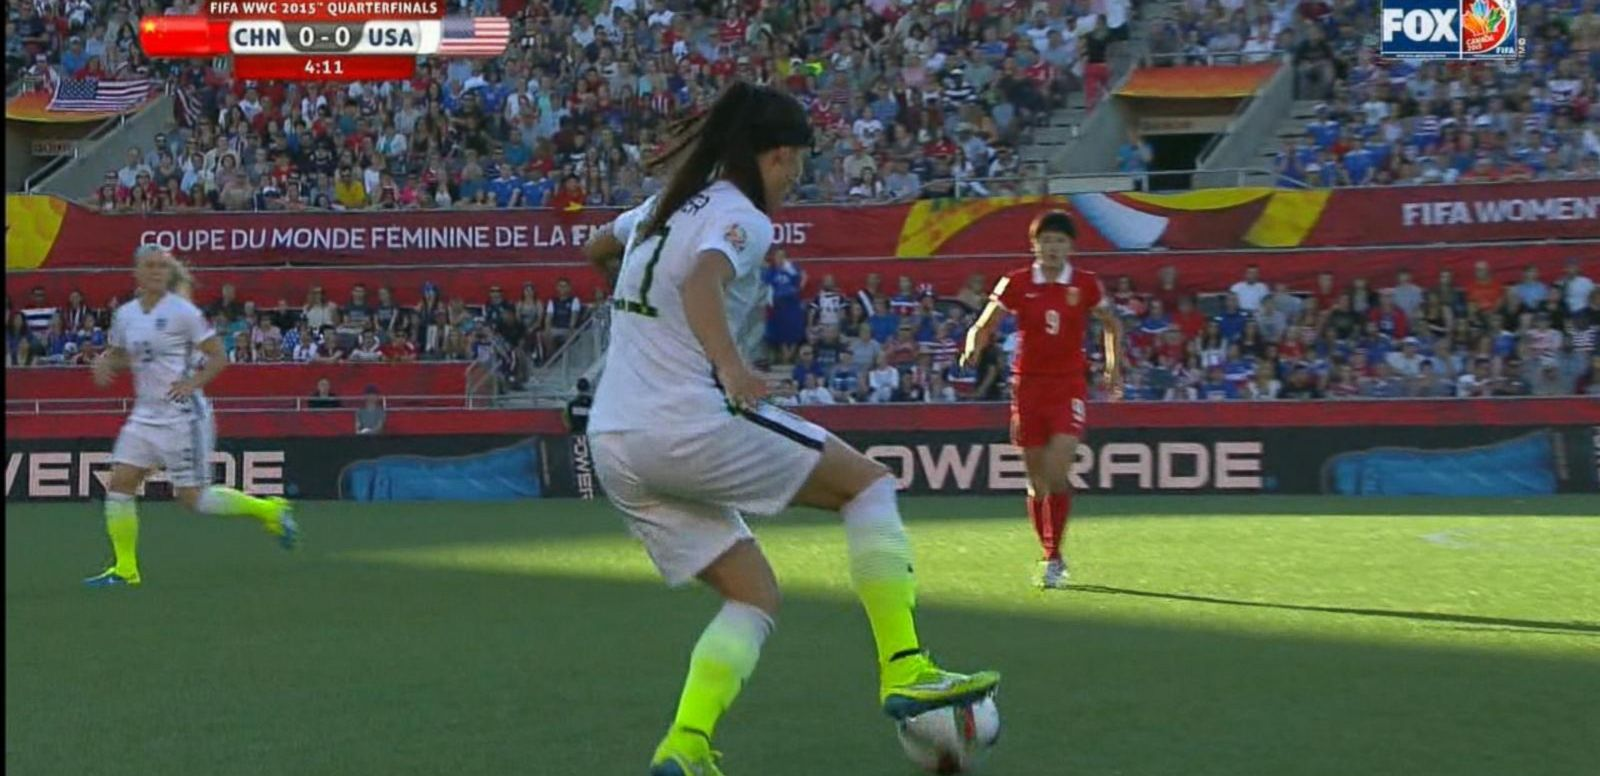 VIDEO: Team USA Facing Off Against Germany